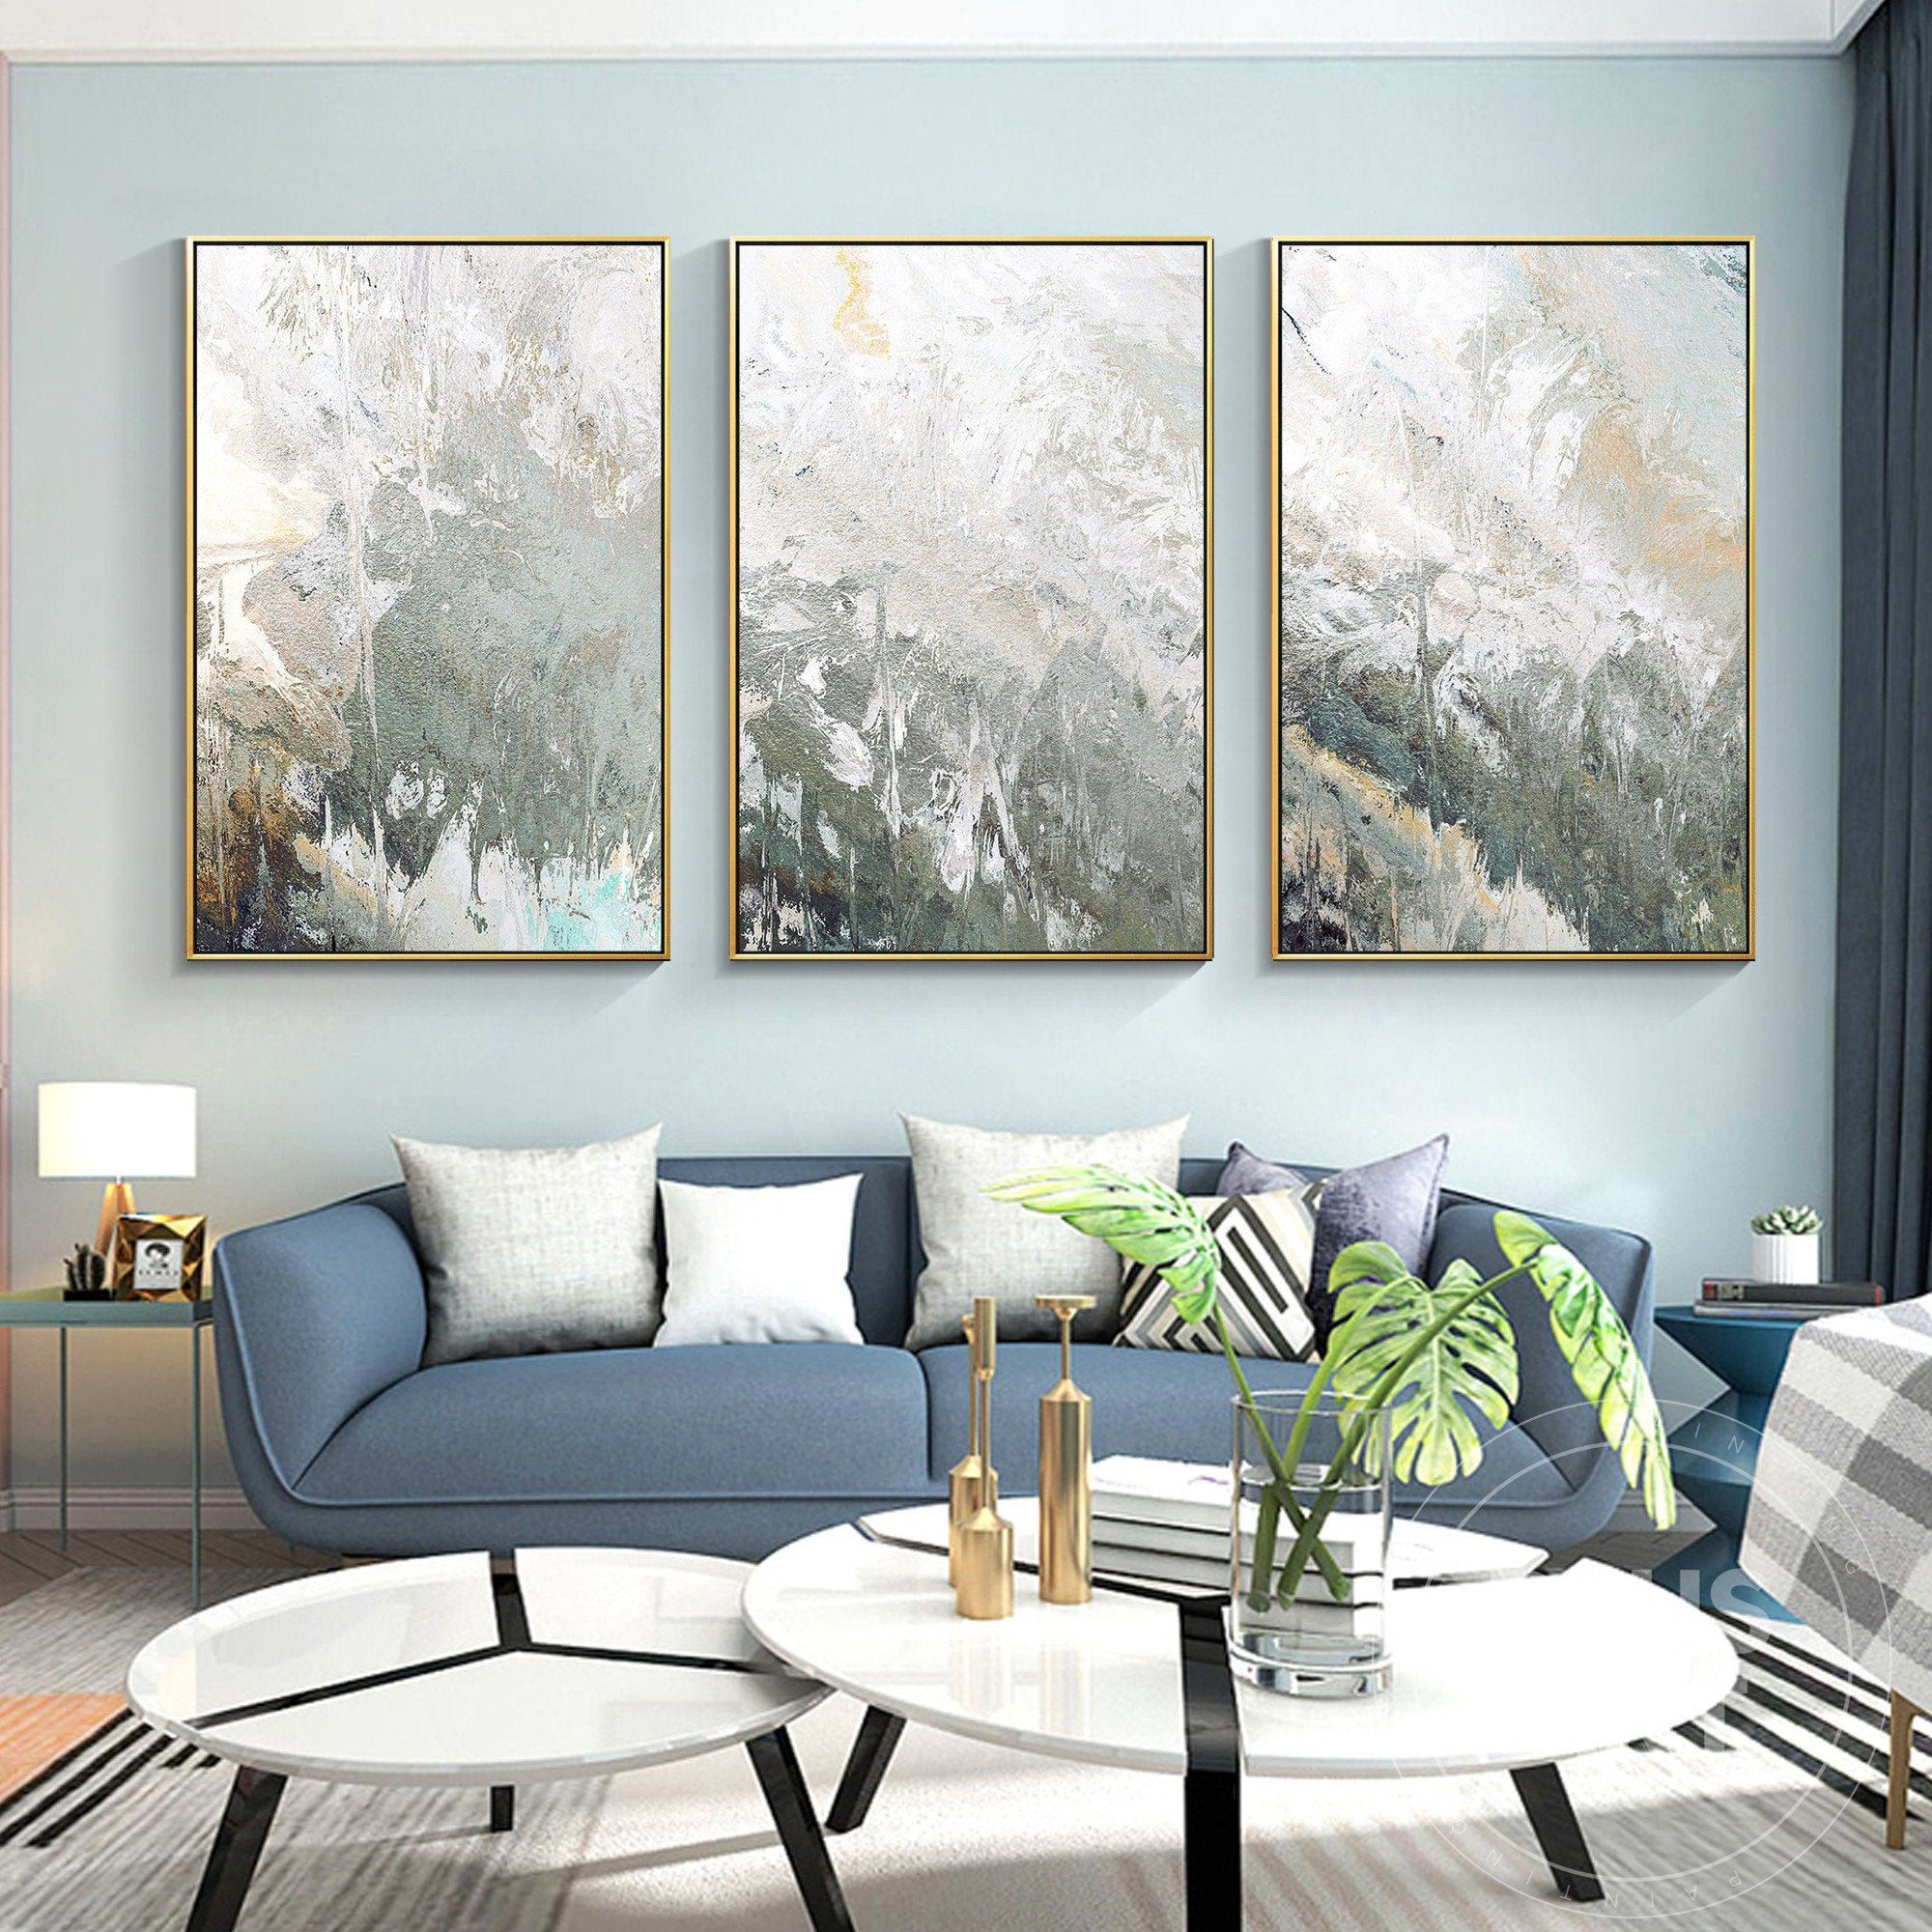 Abstract Painting Framed Wall Art Set Of 3 Prints Abstract Etsy In 2021 Wall Art Sets Frames On Wall 3 Piece Wall Art